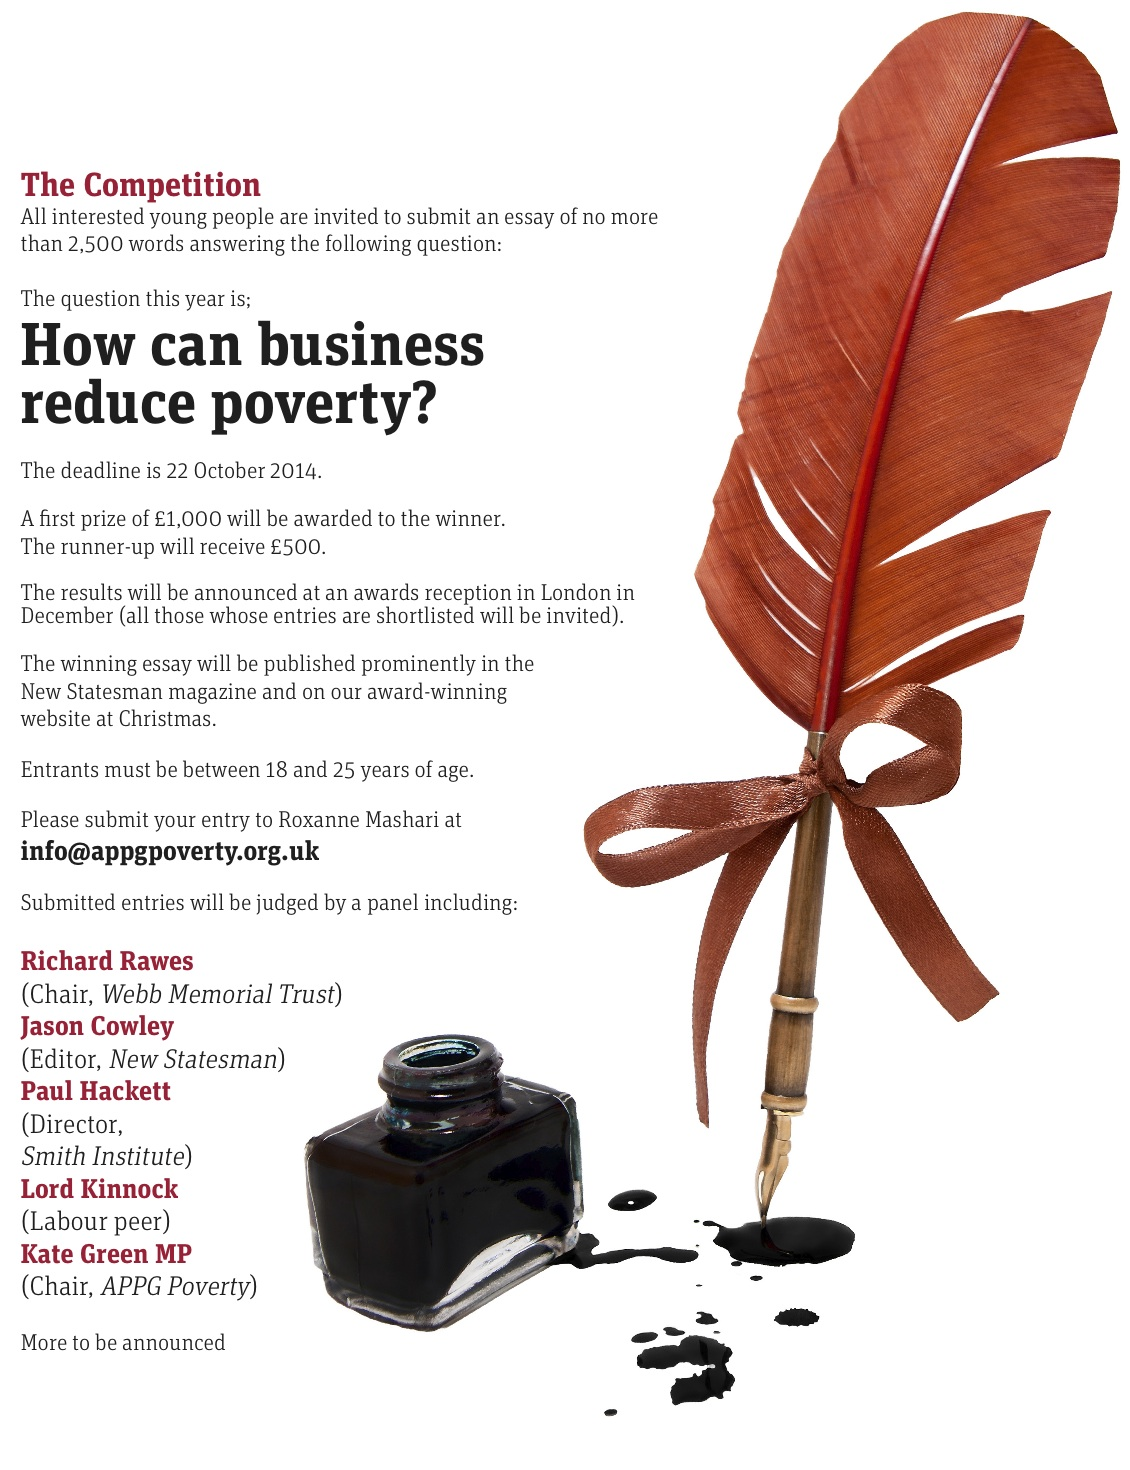 how can business reduce poverty annual essay competition webb posted on 08 sep 2014 categories uncategorized related tags